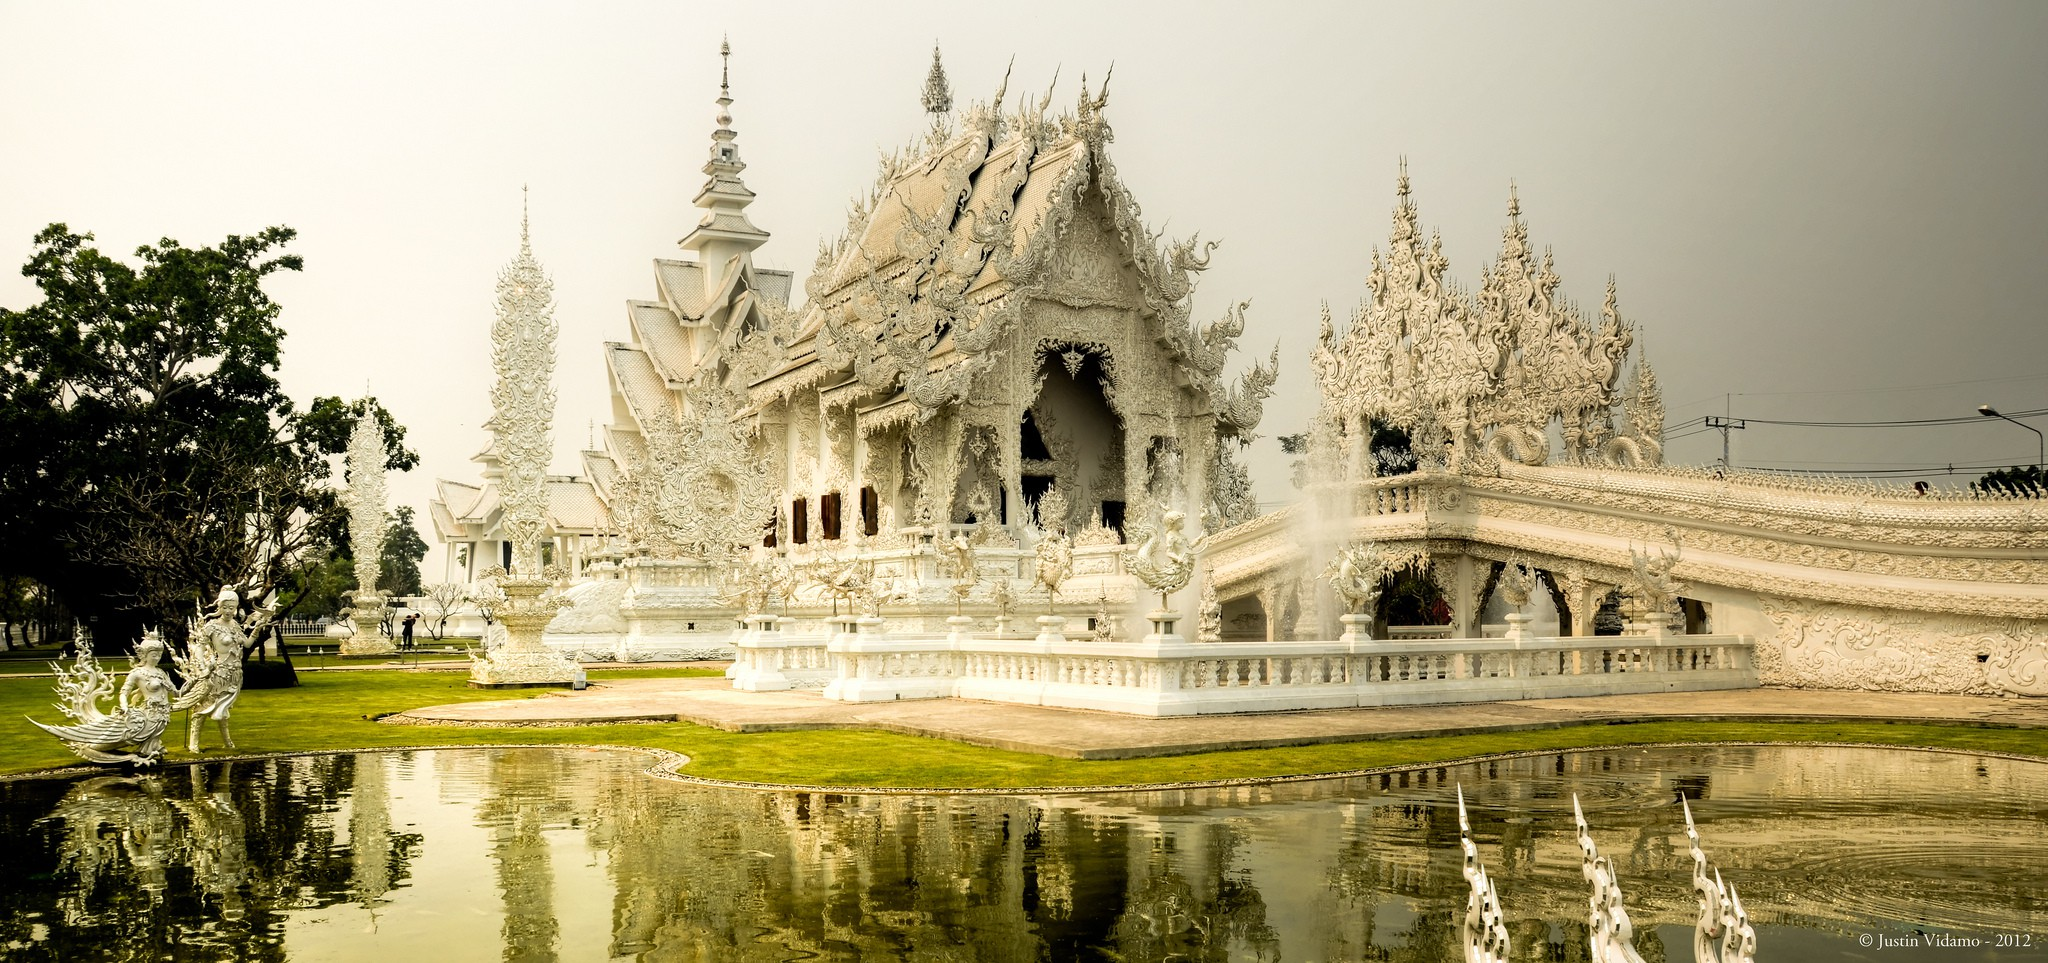 The White Temple, Chiang Rai, Thailand | © Justin Vidamo/Flickr